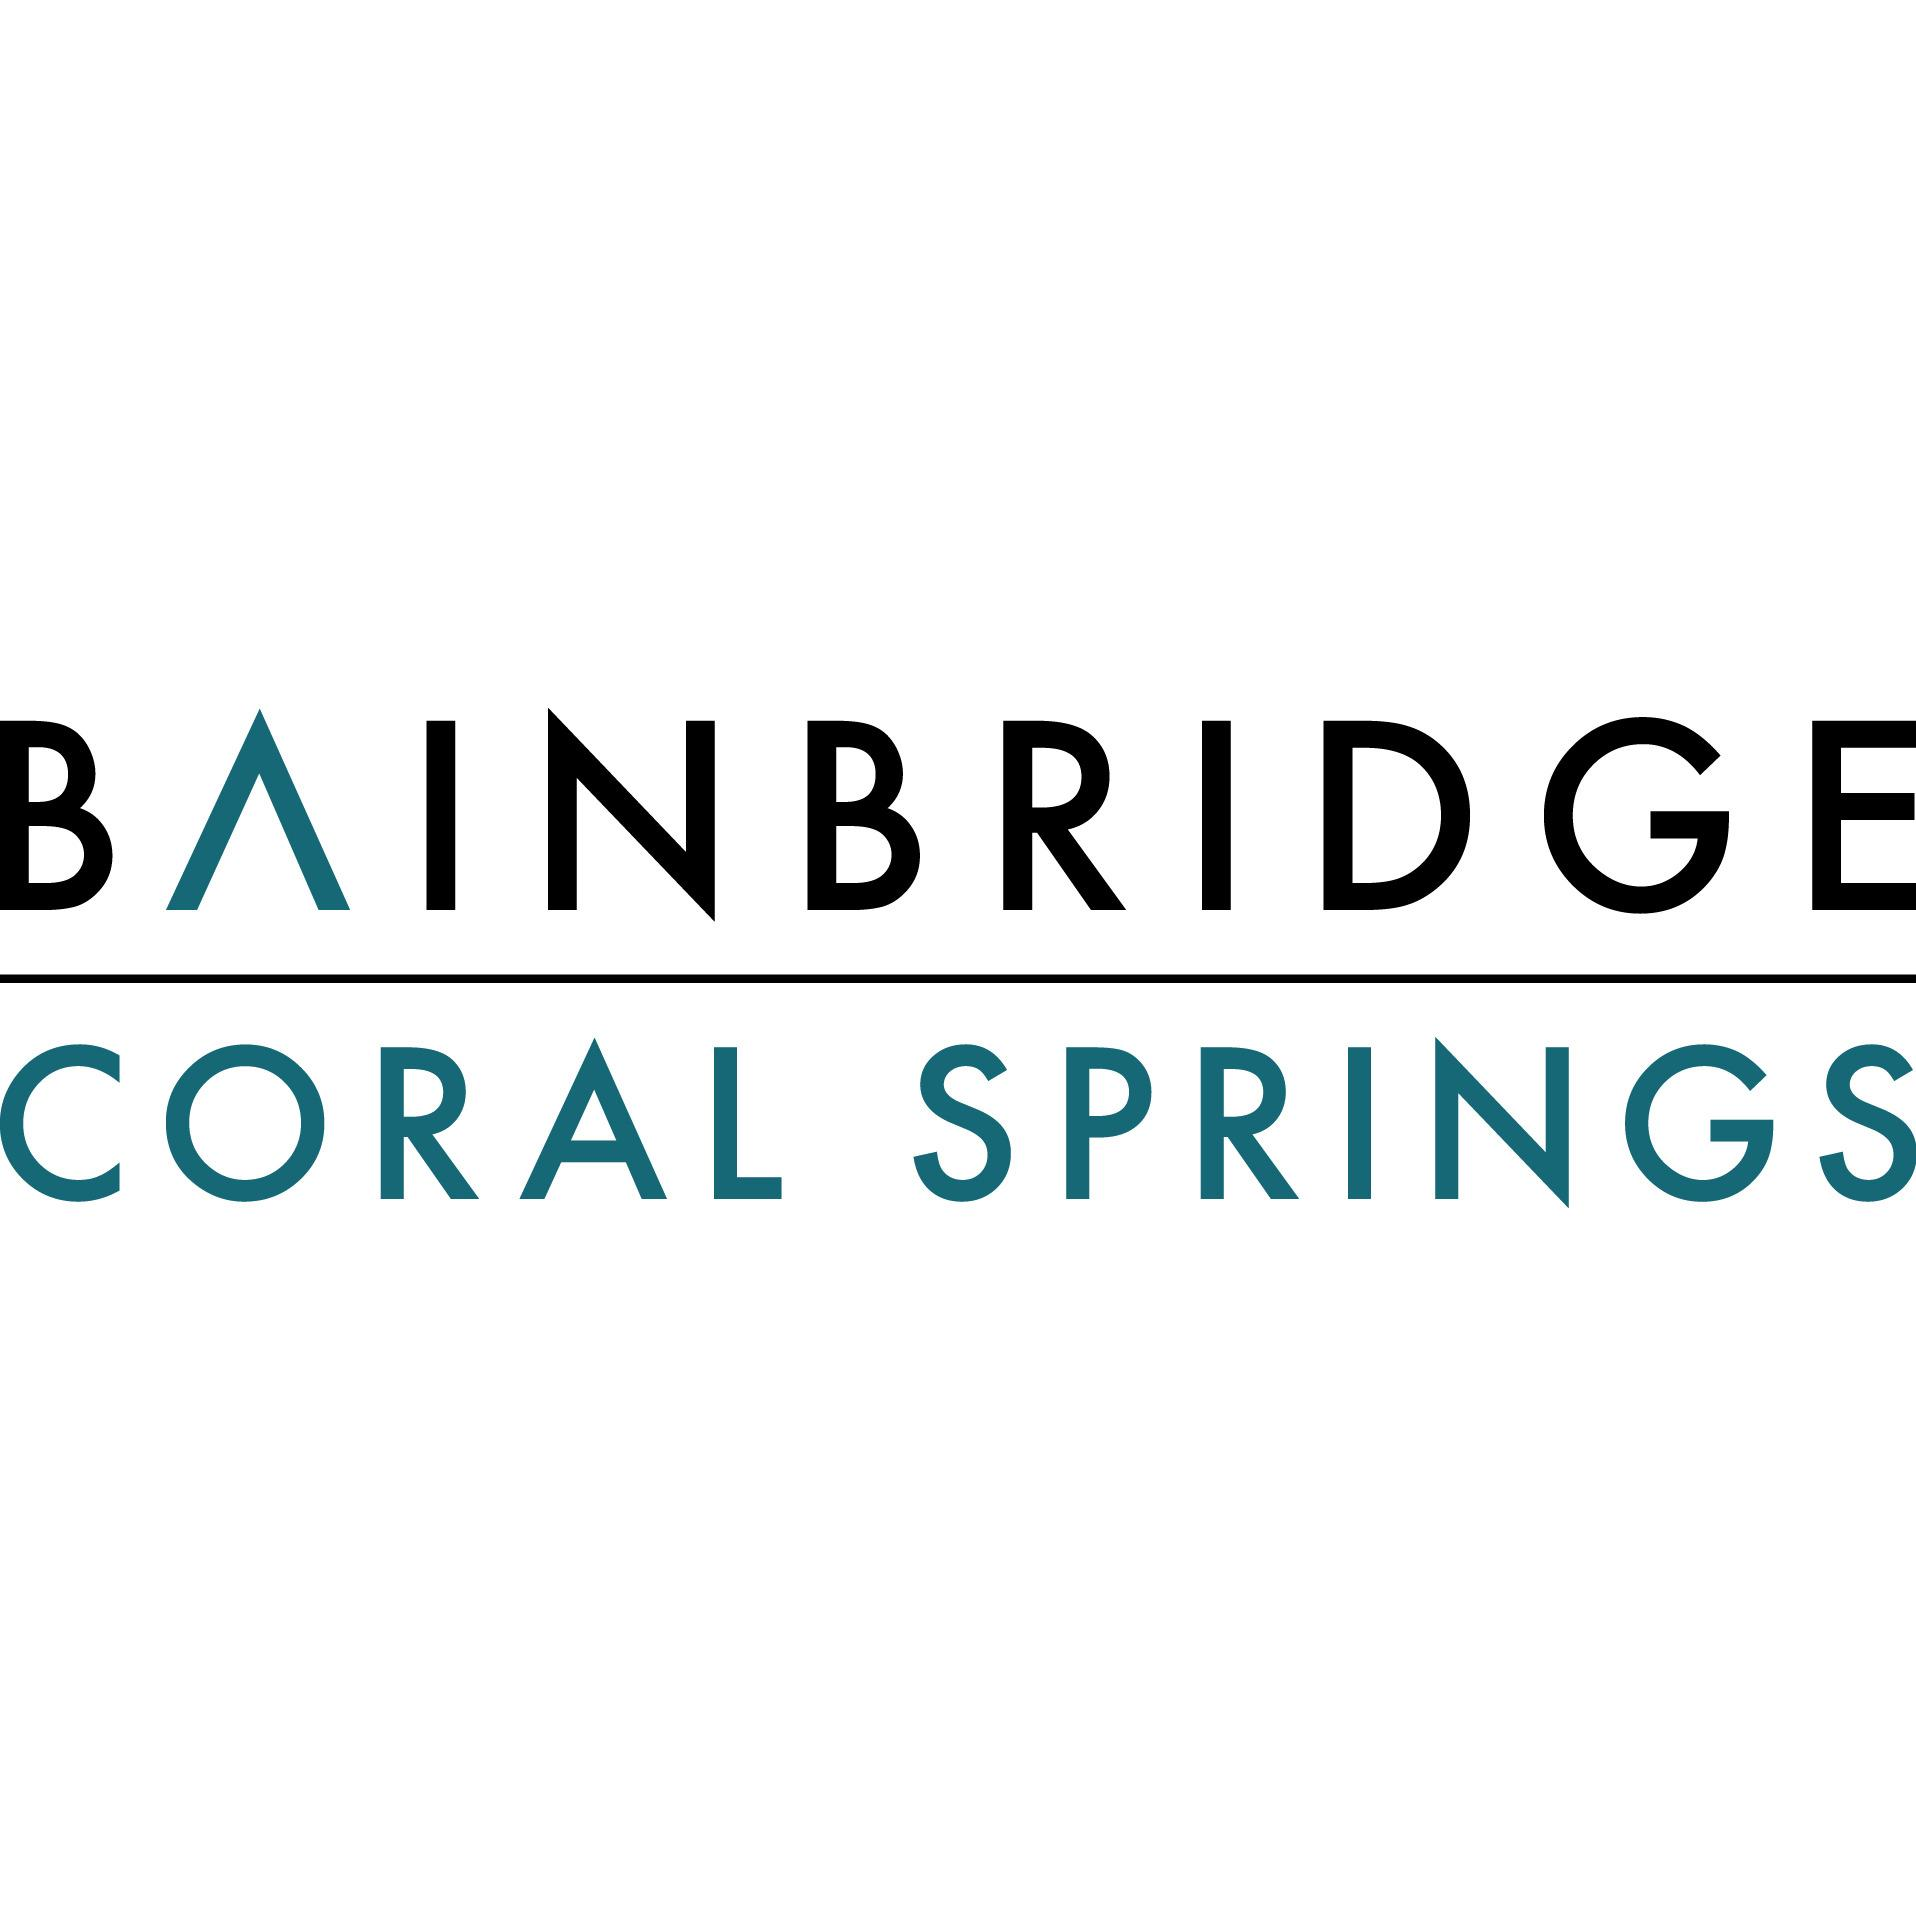 Bainbridge Coral Springs